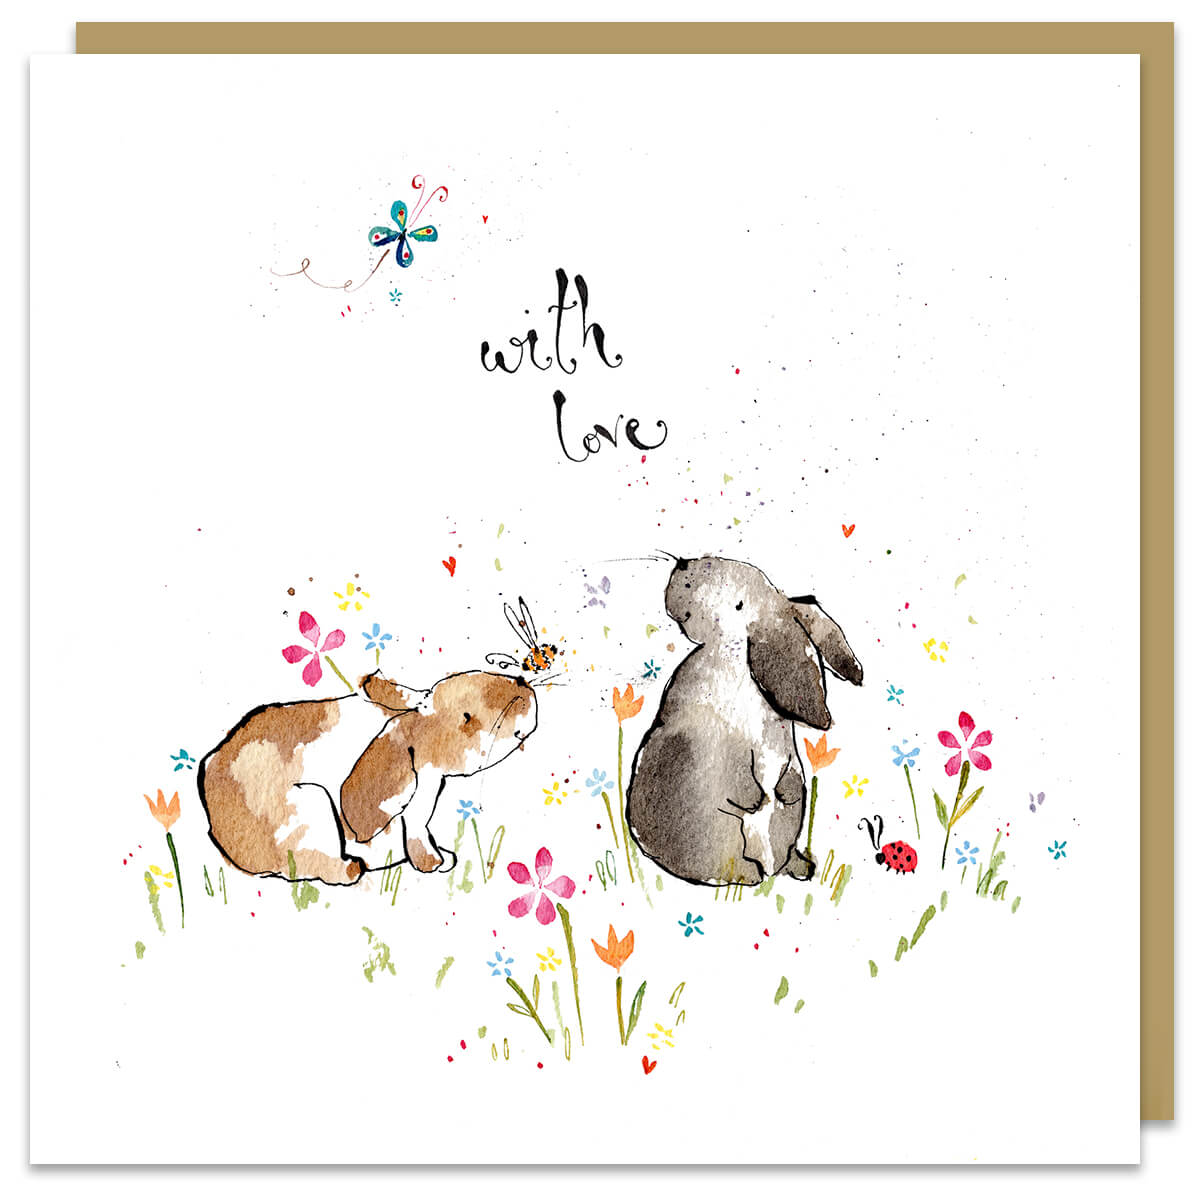 bunnies with love by louise mulgrew